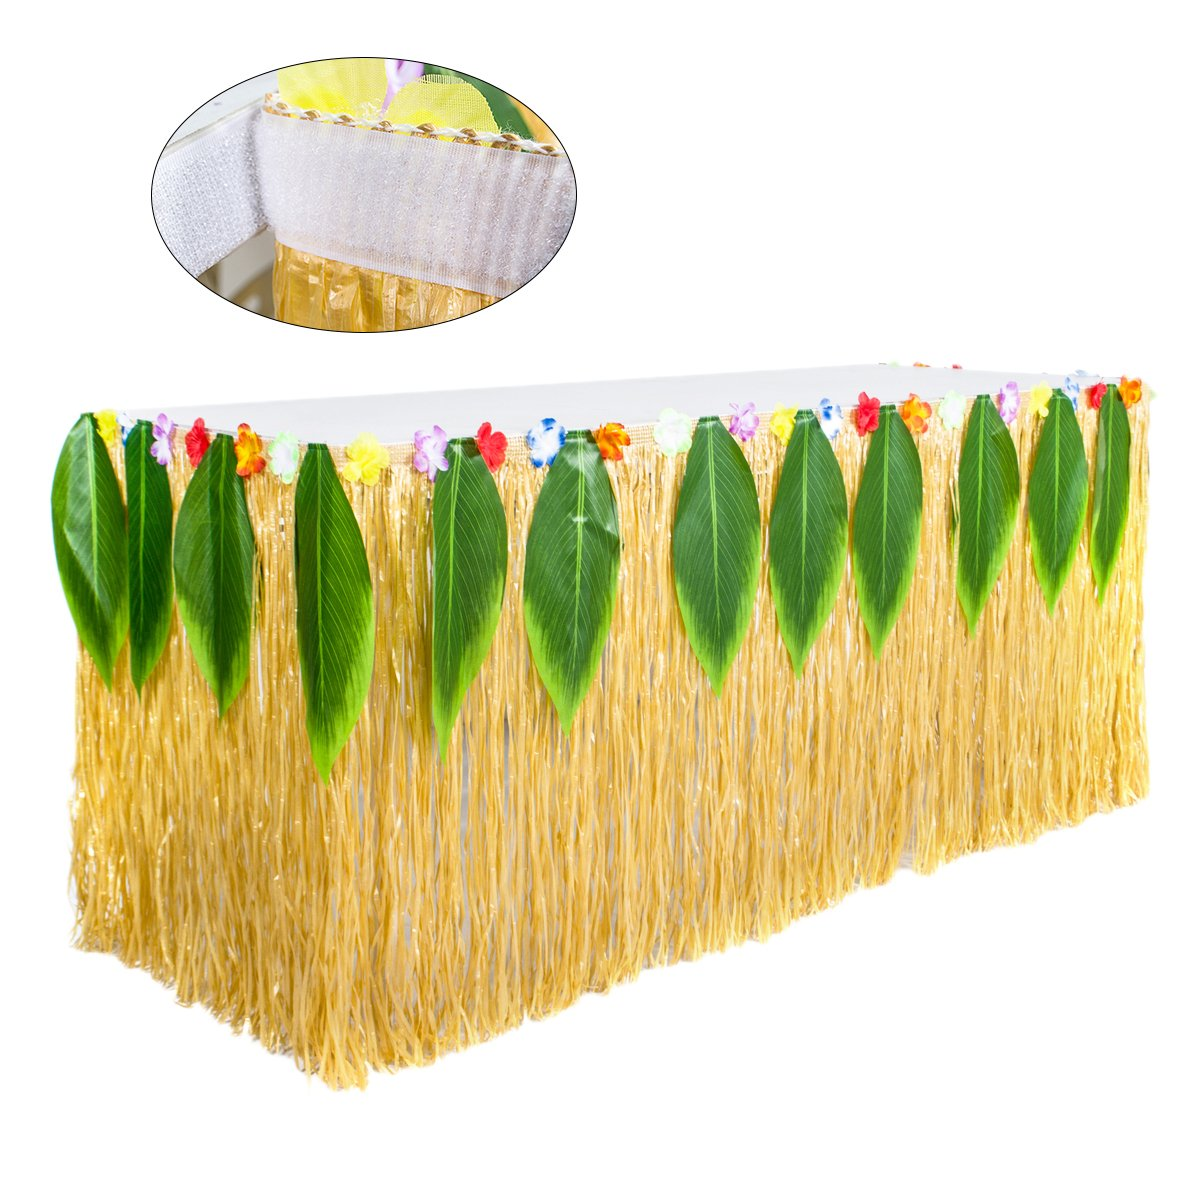 Yellow Hawaiian Table Skirt Luau Grass Table Skirt Raffia Table Skirt String Hibiscus Leis Silk Flower for Tabletop Decoration Hawaiian Tropical Luau Tiki Party Decorations Supplies